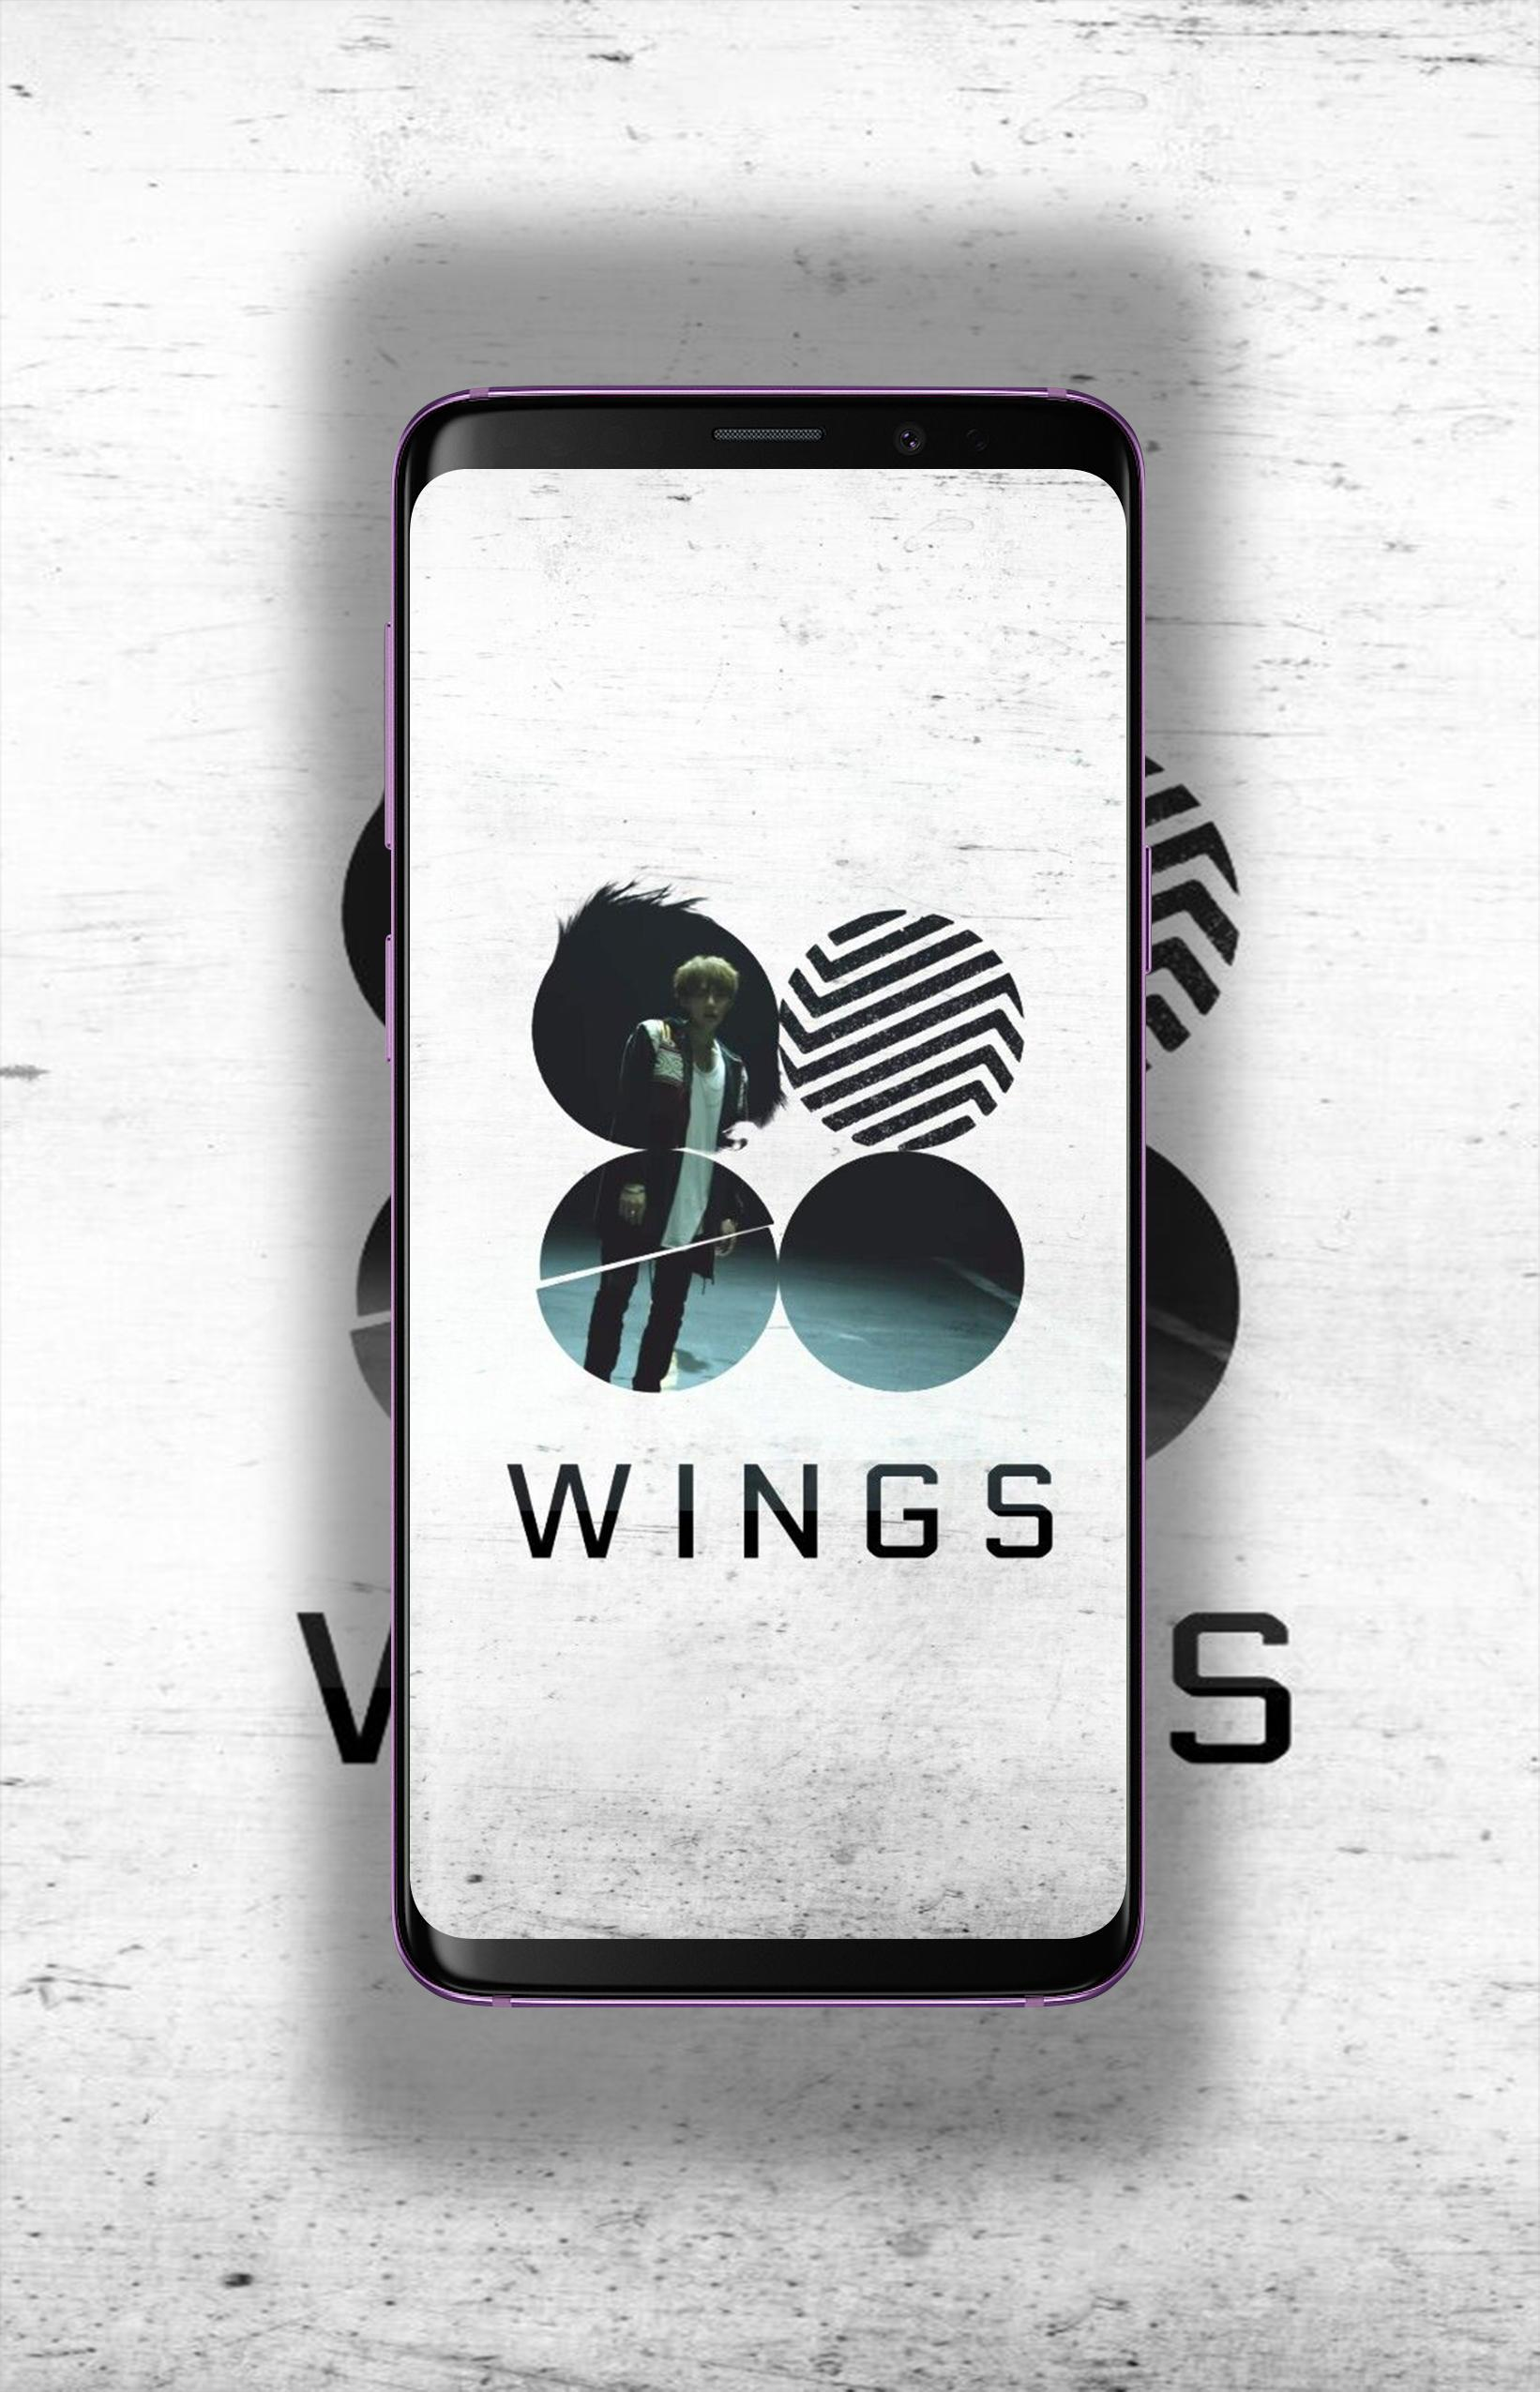 Bangtan Boys Wallpaper Hd For Android Apk Download